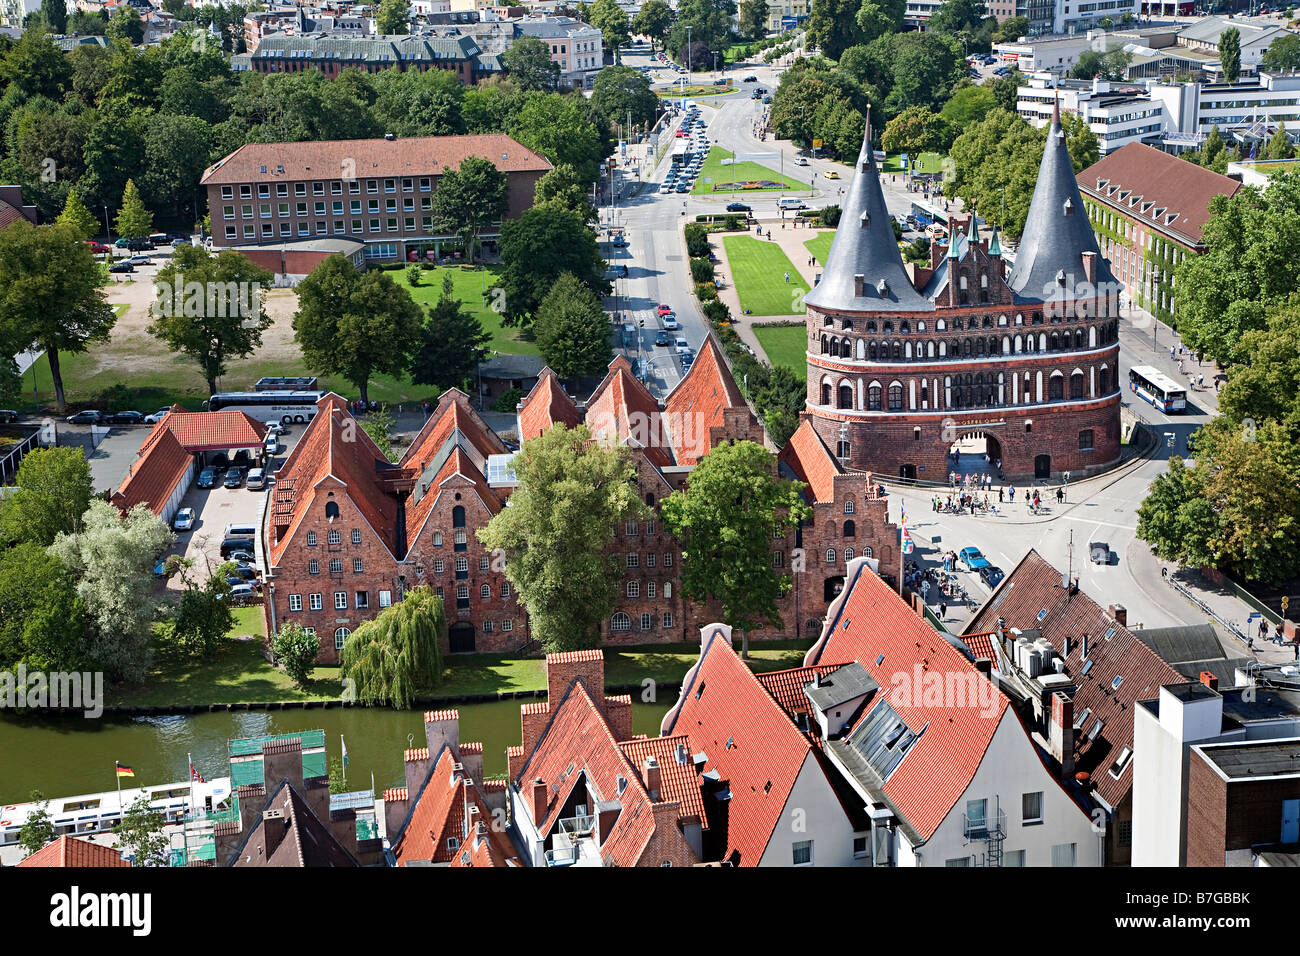 Holstentor city gate and converted salt warehouse Salzspeicher on river Trave Lubeck Germany - Stock Image